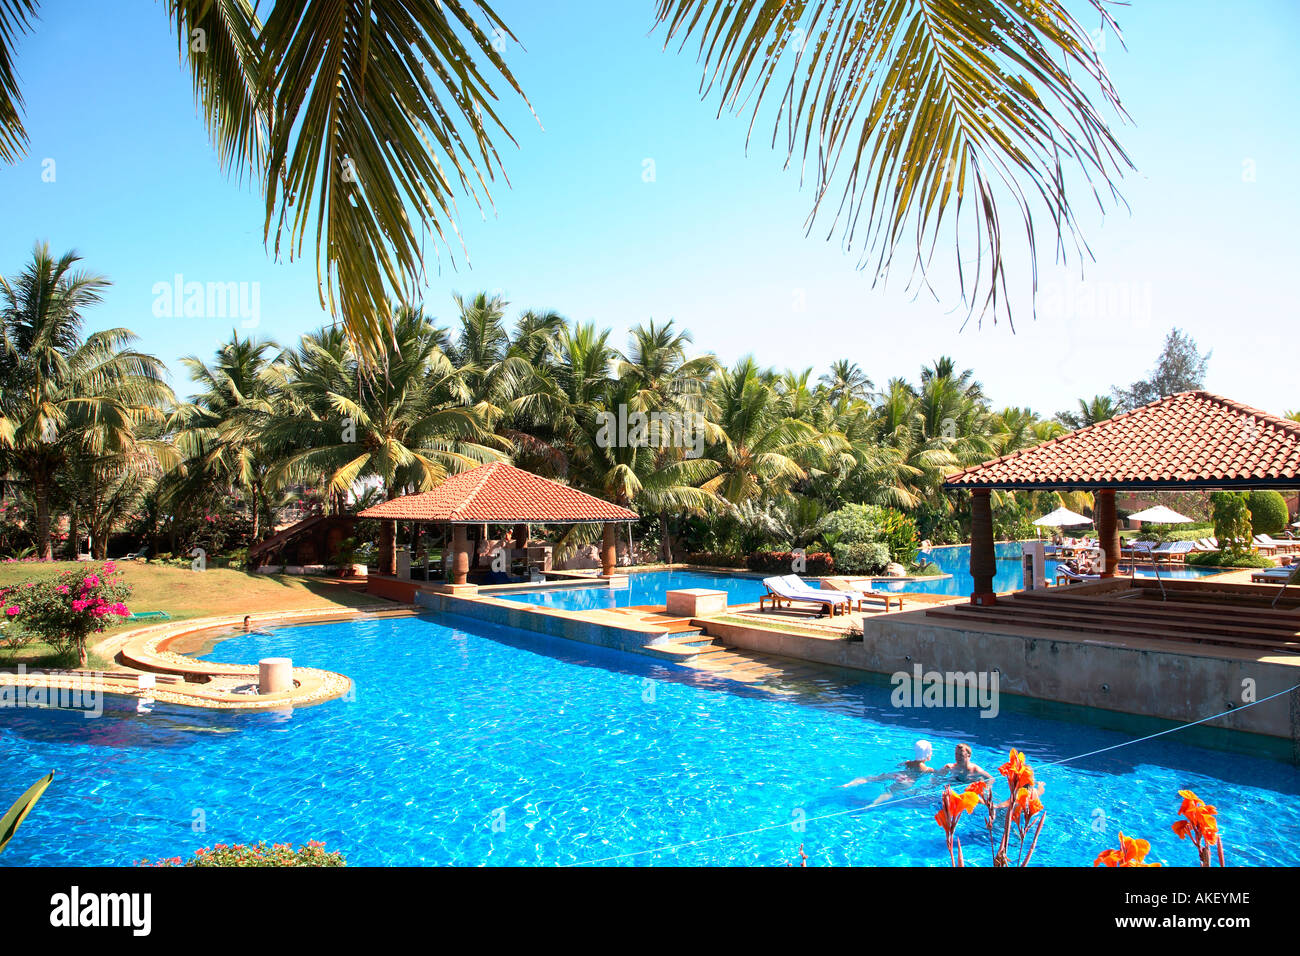 India goa kenilworth hotel swimming pool mood stock photo 8560269 alamy for Resorts in goa with private swimming pool